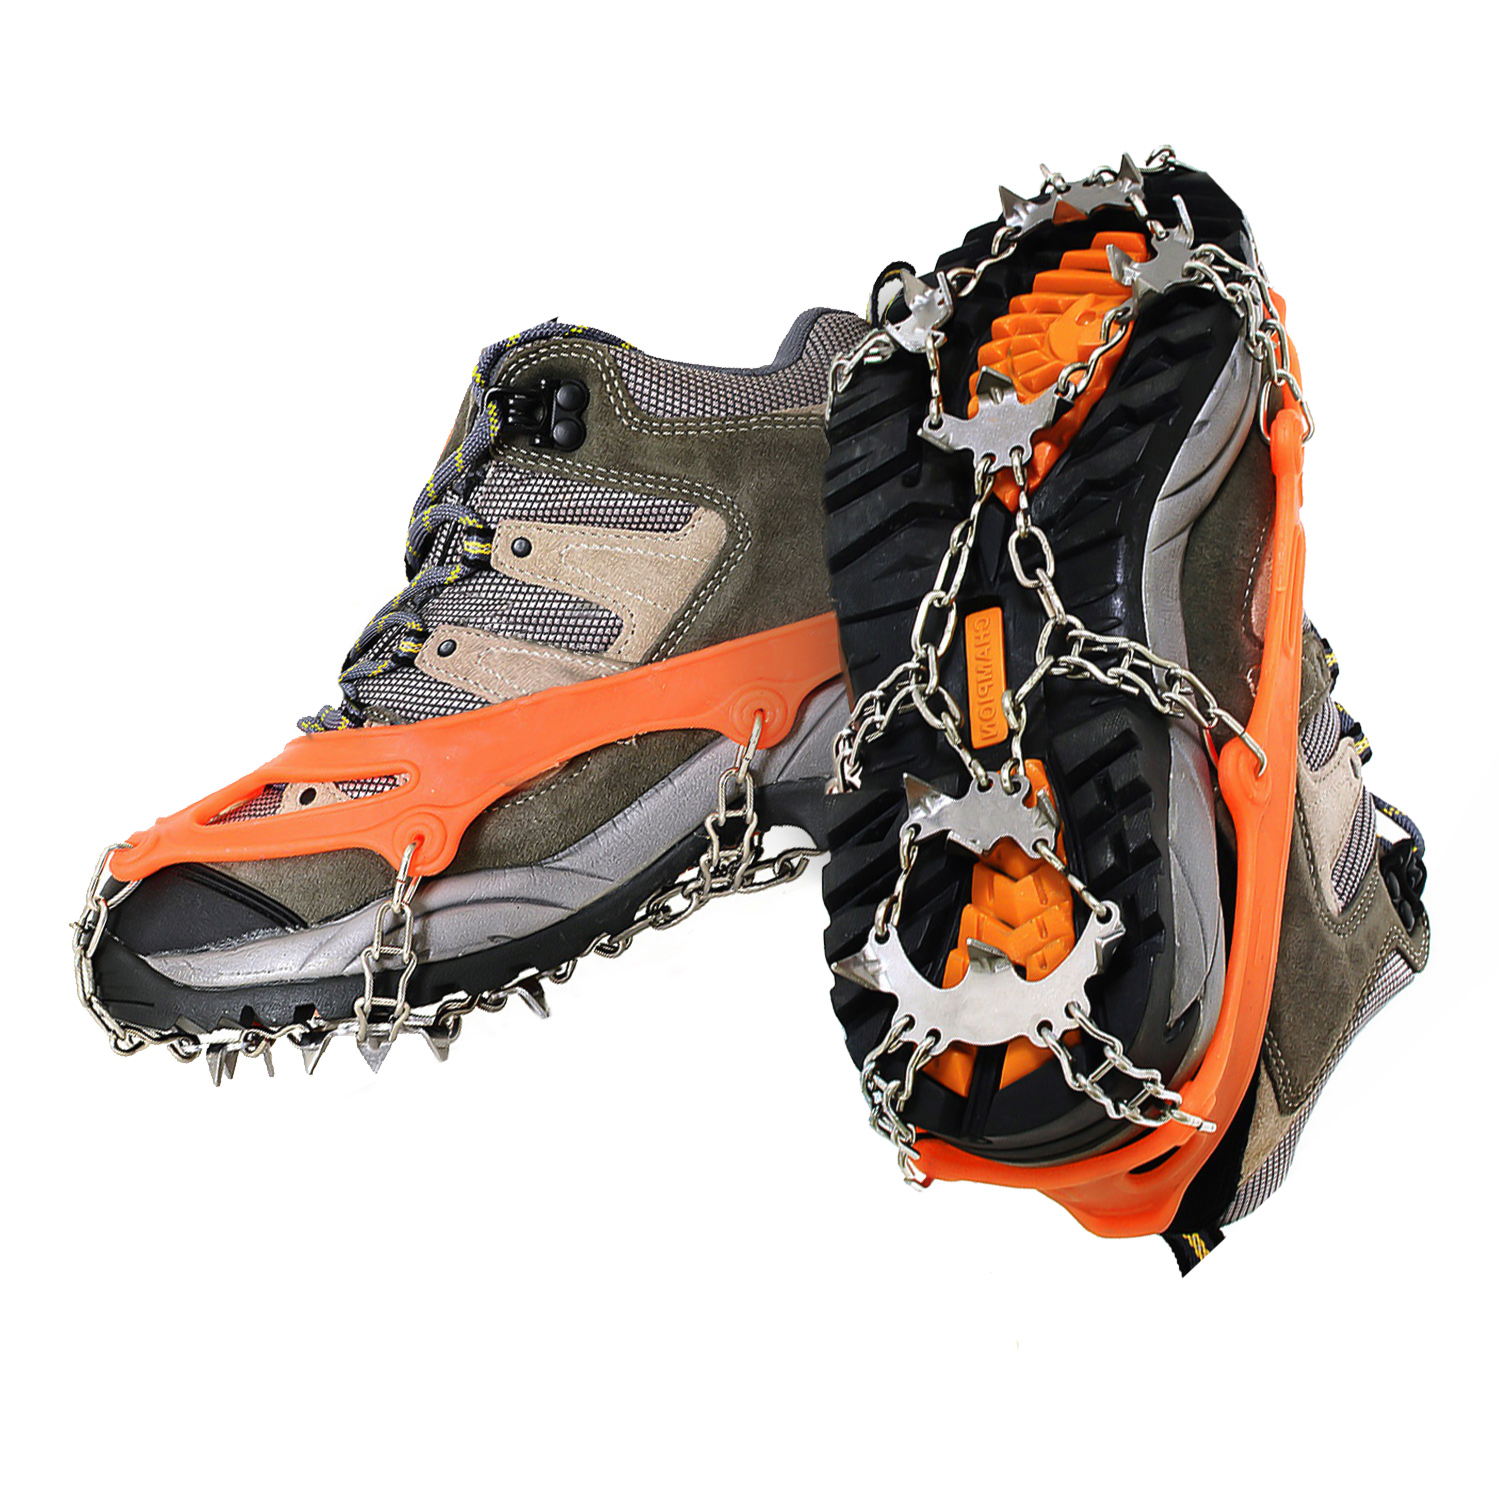 Funsparks Ice Cleats Snow Spikes Crampons Unisex Anti Slip Shoes Grippers w/ 18 Teeth Stainless Steel